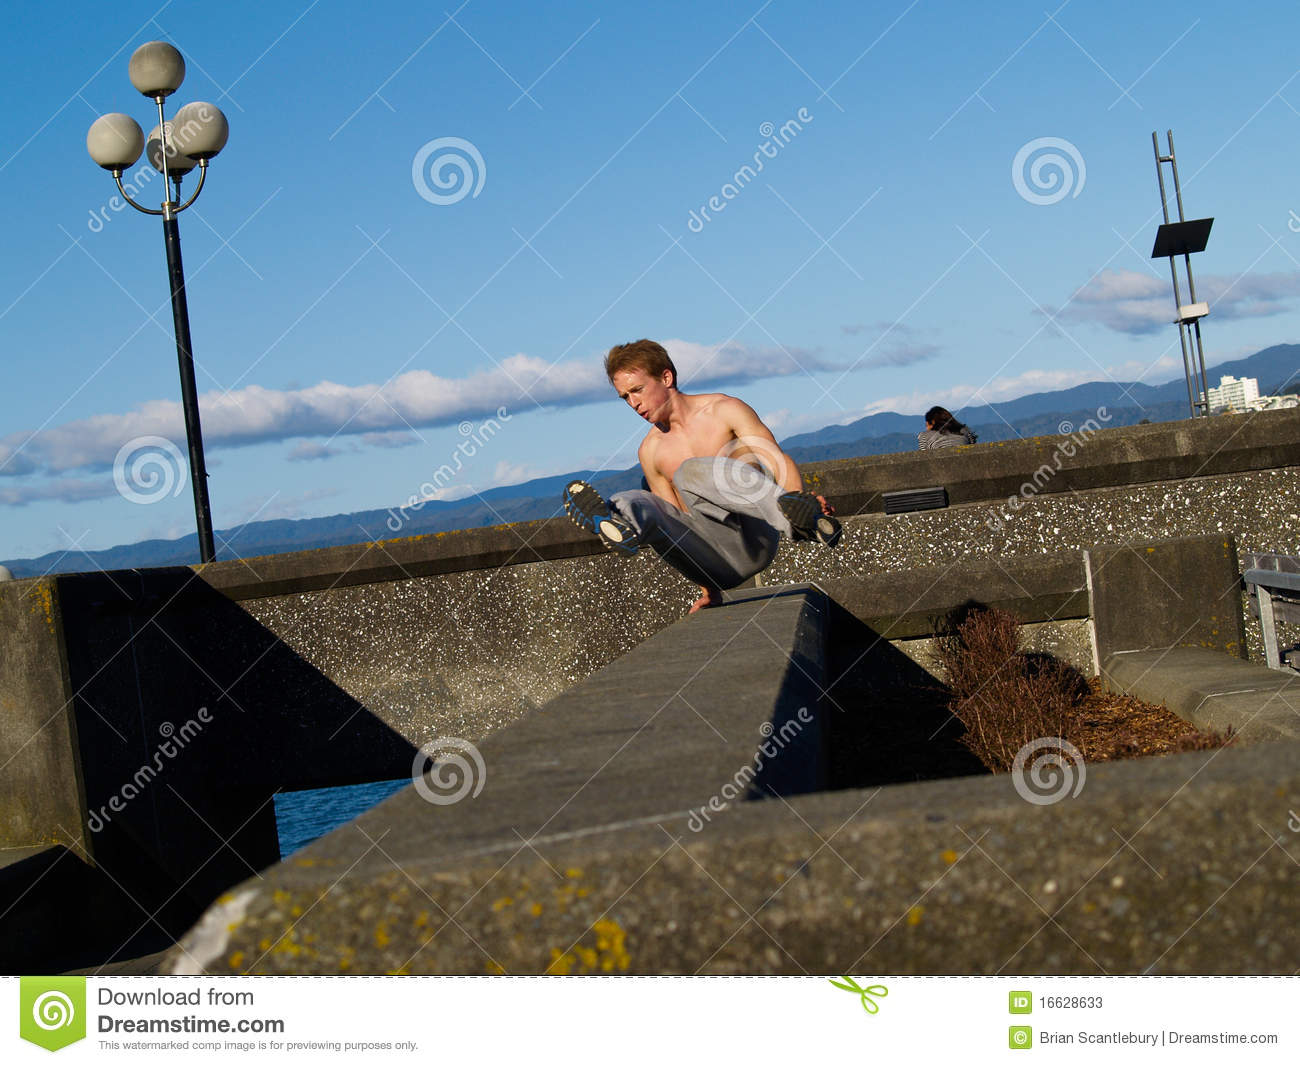 parkour building or city jumping editorial stock photo image of